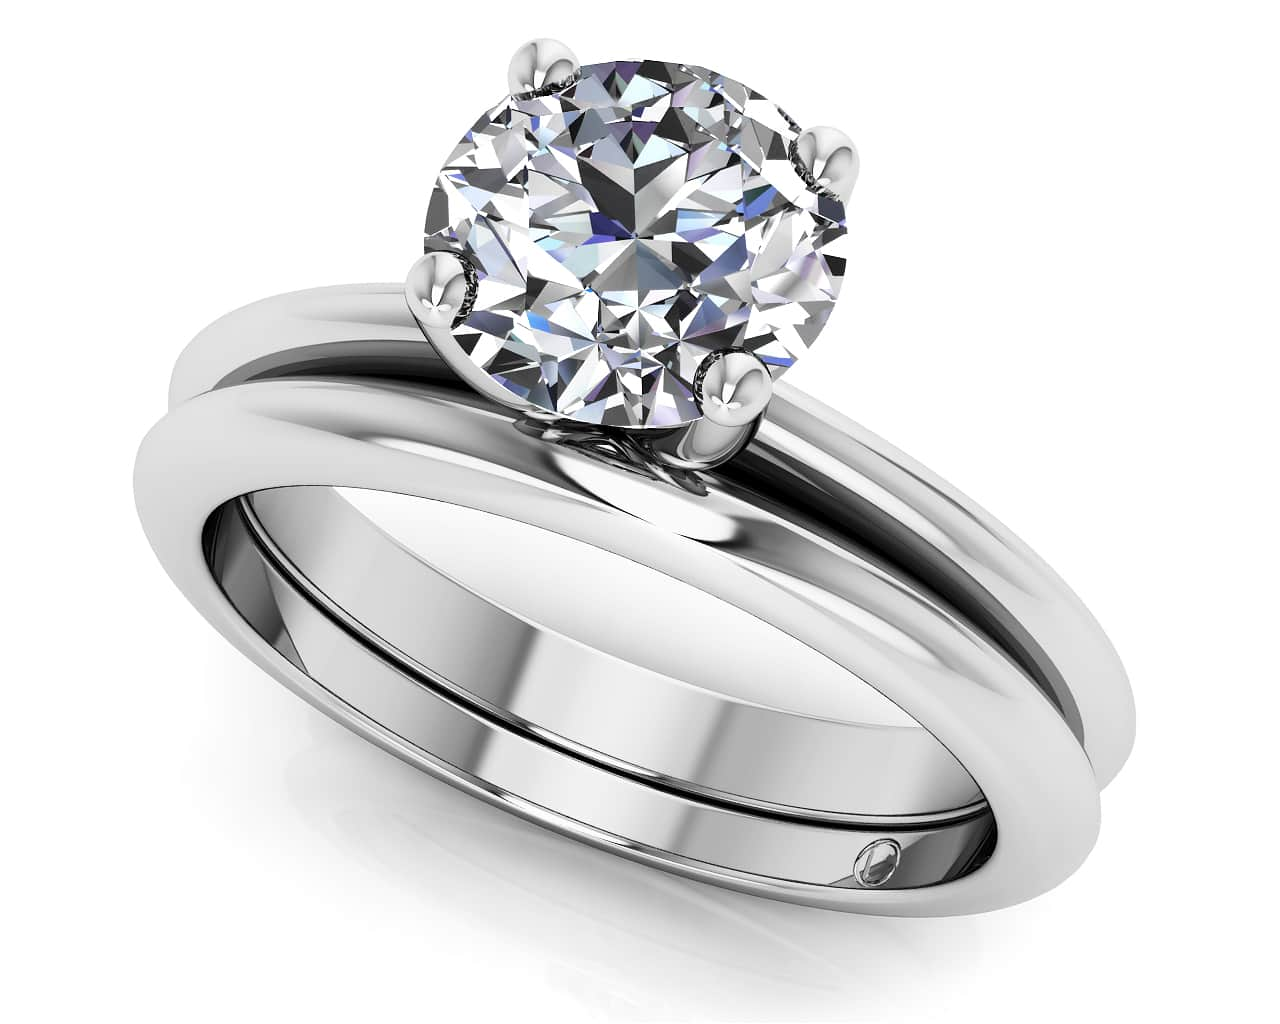 customize your wedding set matching diamond bridal set - Platinum Wedding Ring Sets